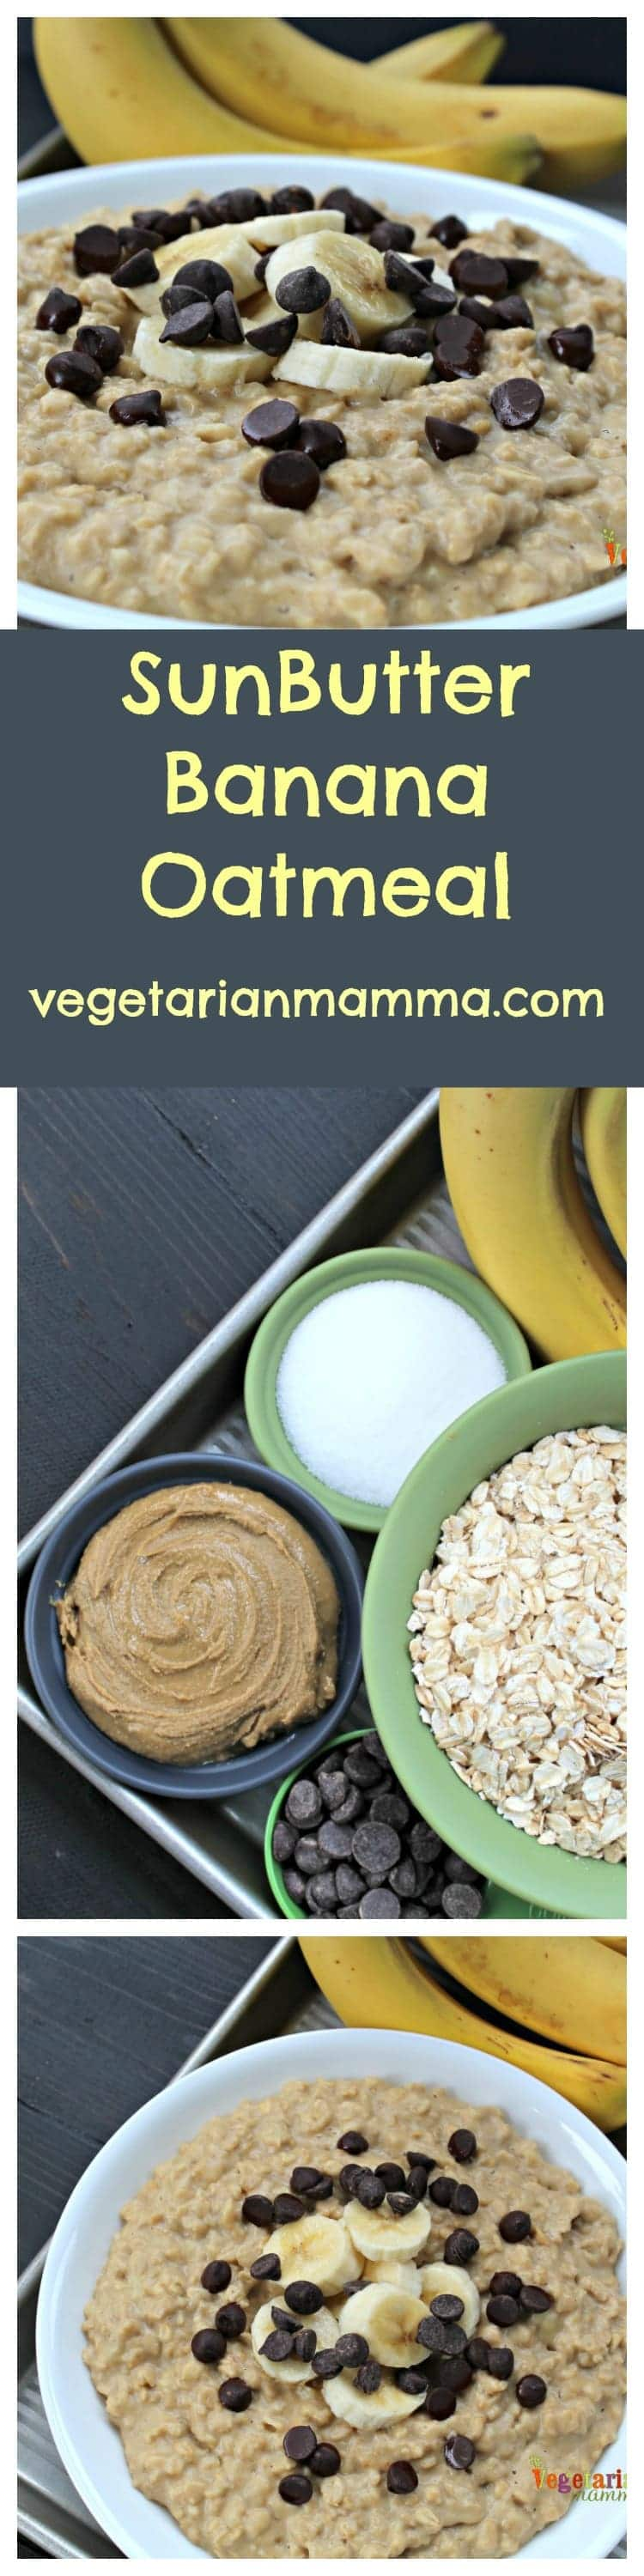 SunButter Banana Oatmeal - Gluten Free and Nut Free